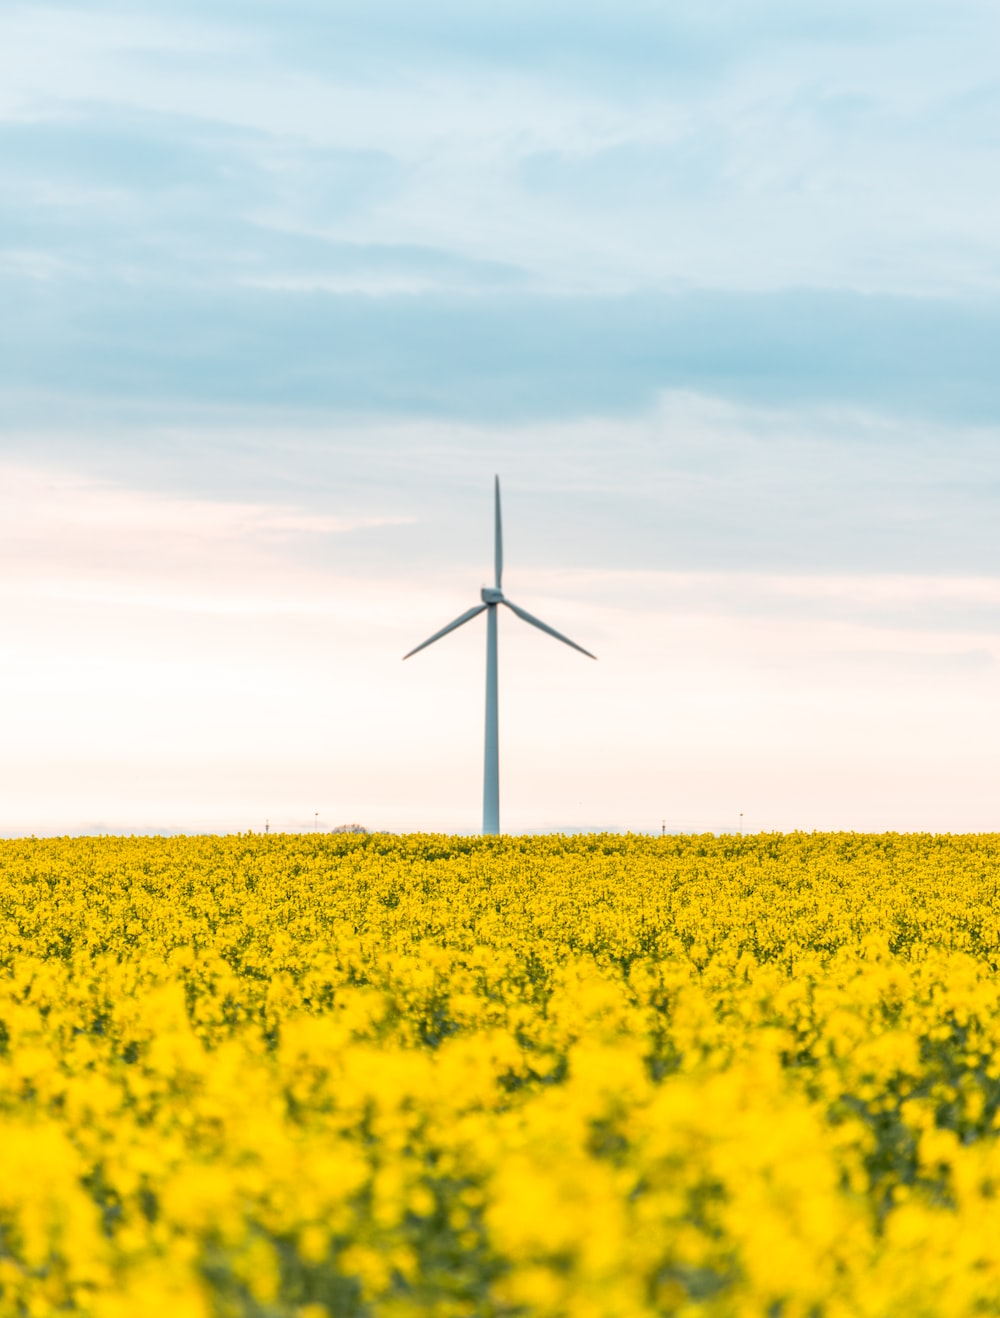 wind turbines on yellow flower field under white clouds and blue sky during daytime